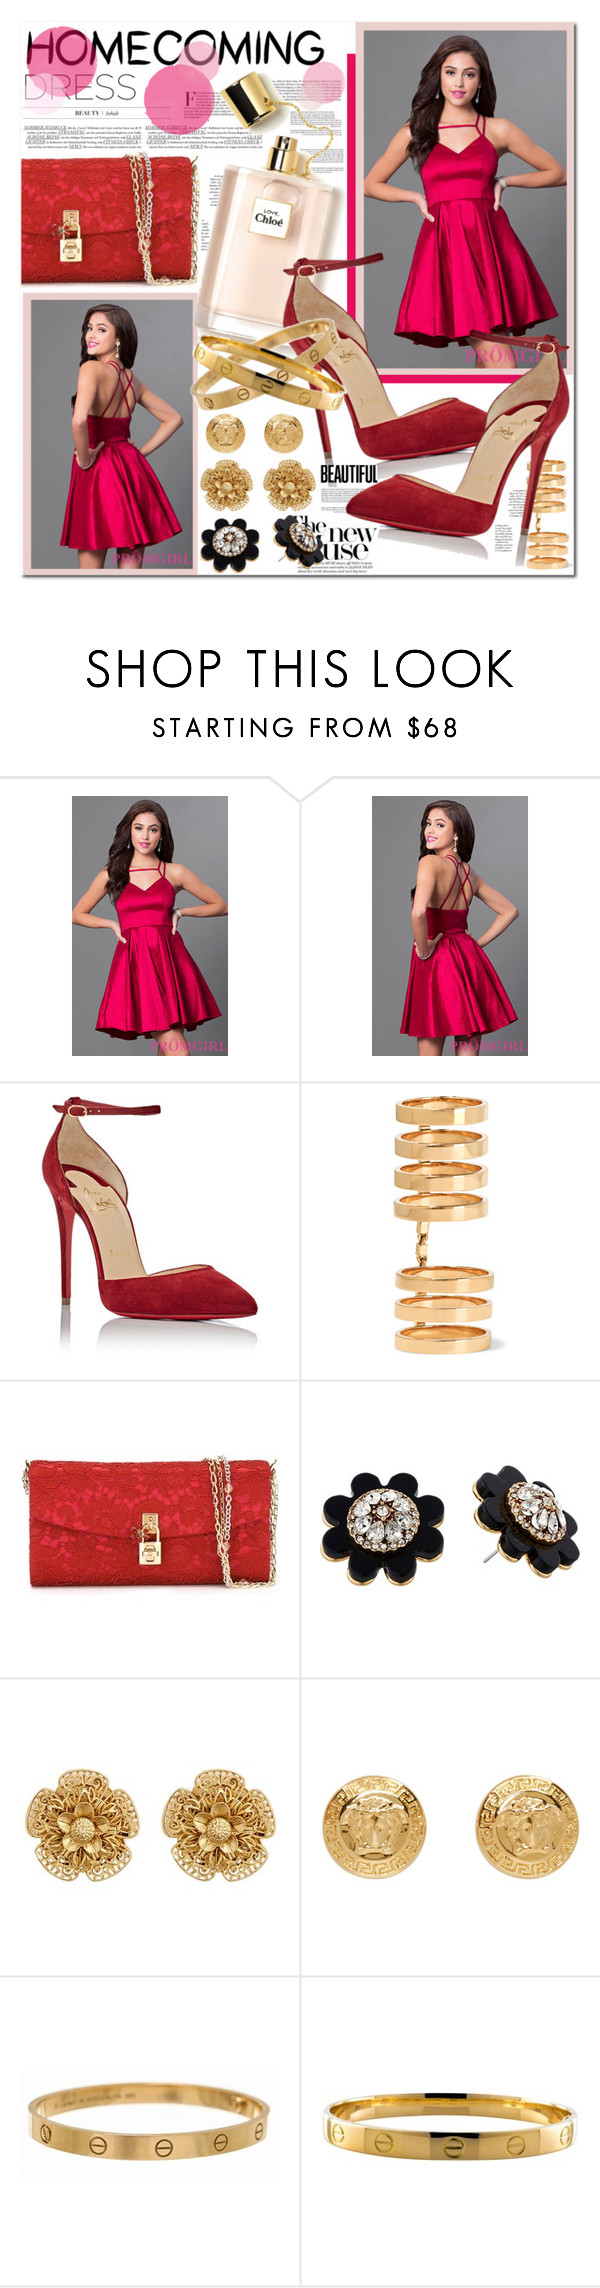 """""""homecoming"""" by misskouture ❤ liked on Polyvore featuring Christian Louboutin, Repossi, Dolce&Gabbana, Kate Spade, Miriam Haskell, Versace and Cartier"""